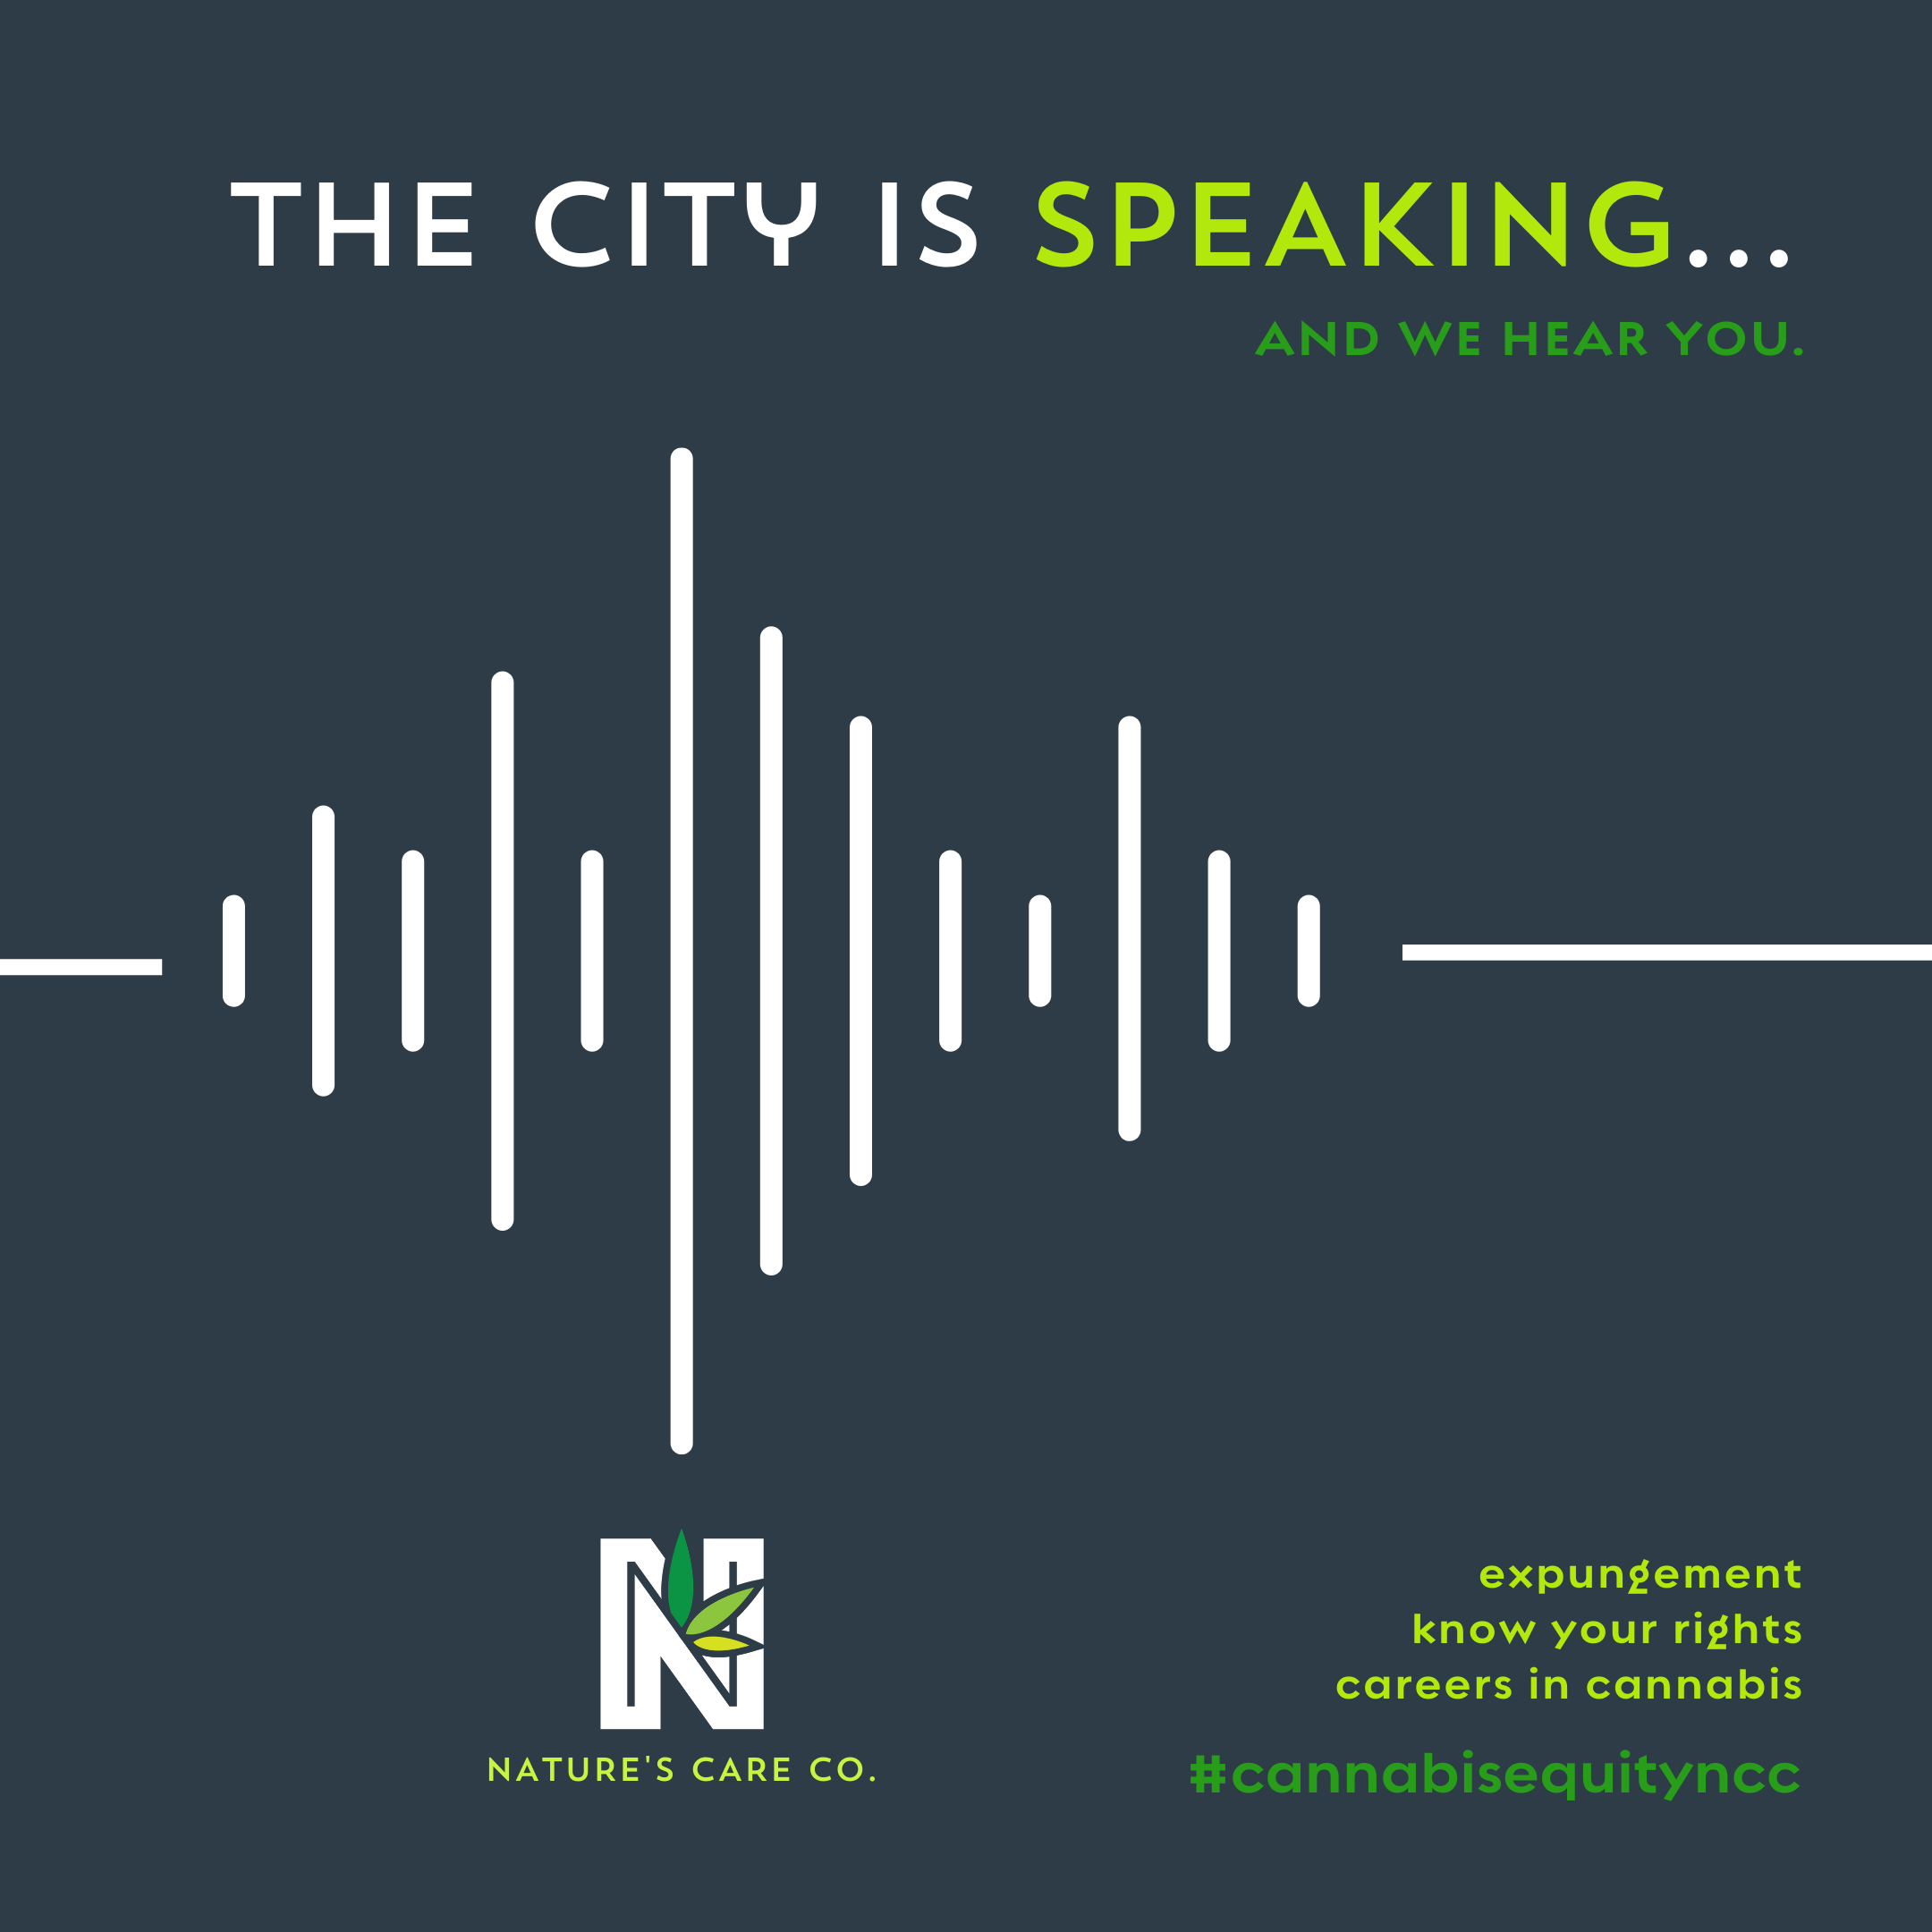 """Nature's Care Company (""""Nature's Care"""") : The City is Speaking. And We Hear You."""